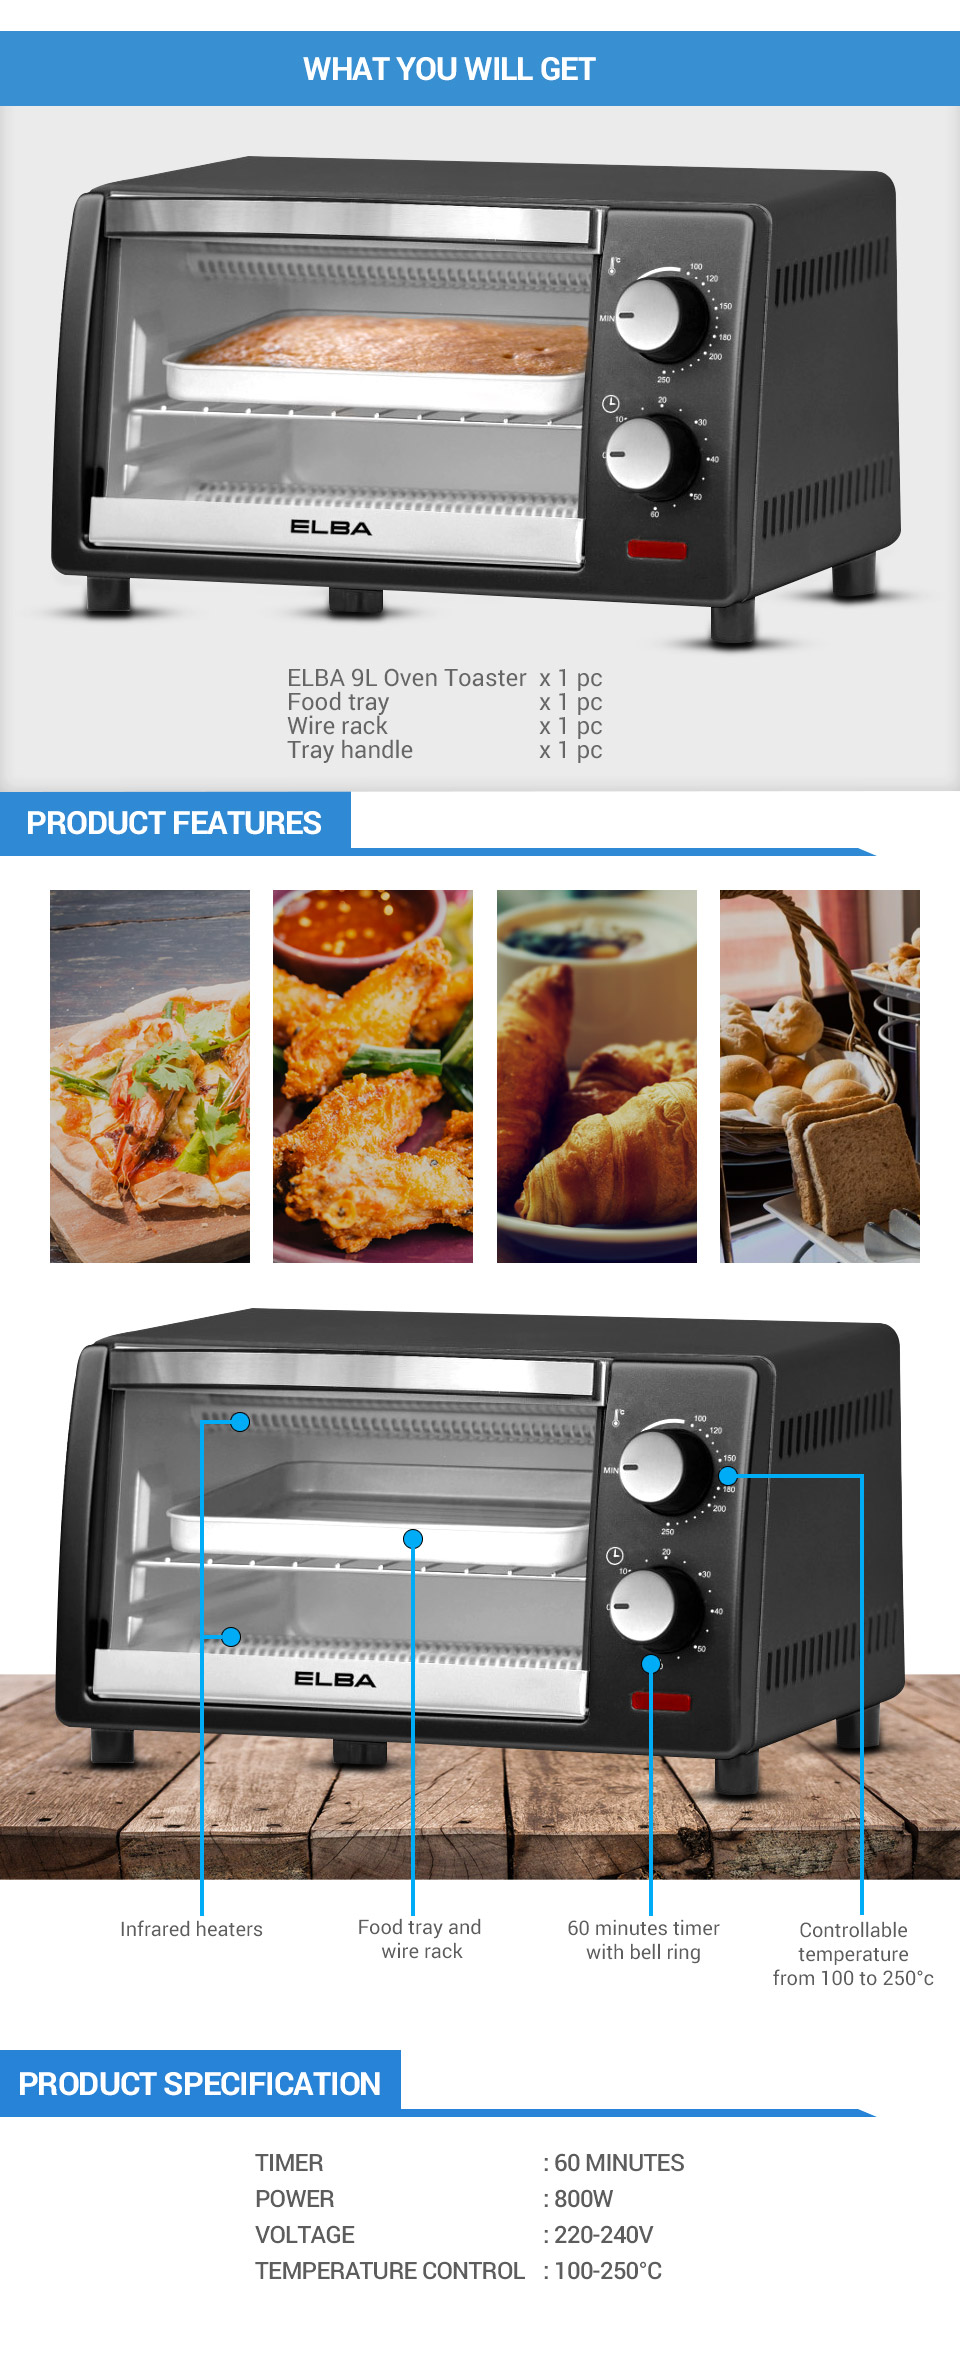 rated oven dp toaster reviews amazon steel black ovens ensemble toasters best hamilton com sellers cuisinart reviewed toastation beach ultimate pizza stainless